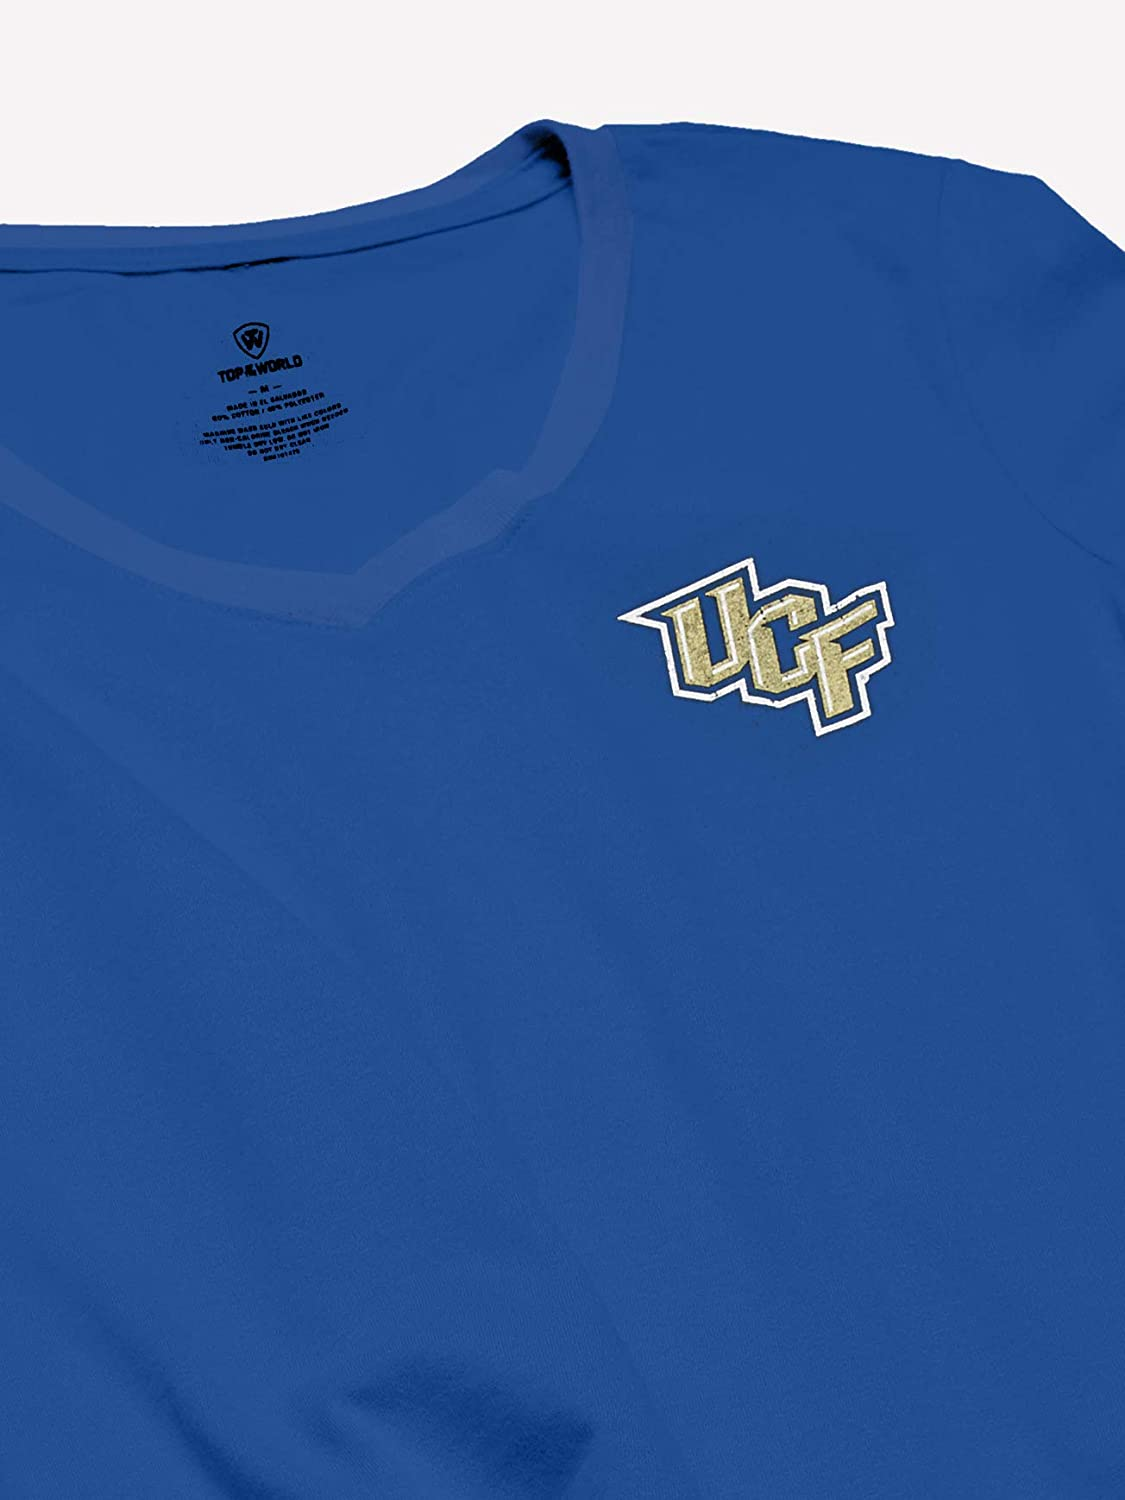 Top of the World NCAA Womens Trim Modern Fit Premium Sueded Cotton//Poly Blend V-Neck Short Sleeve Team Color Tee